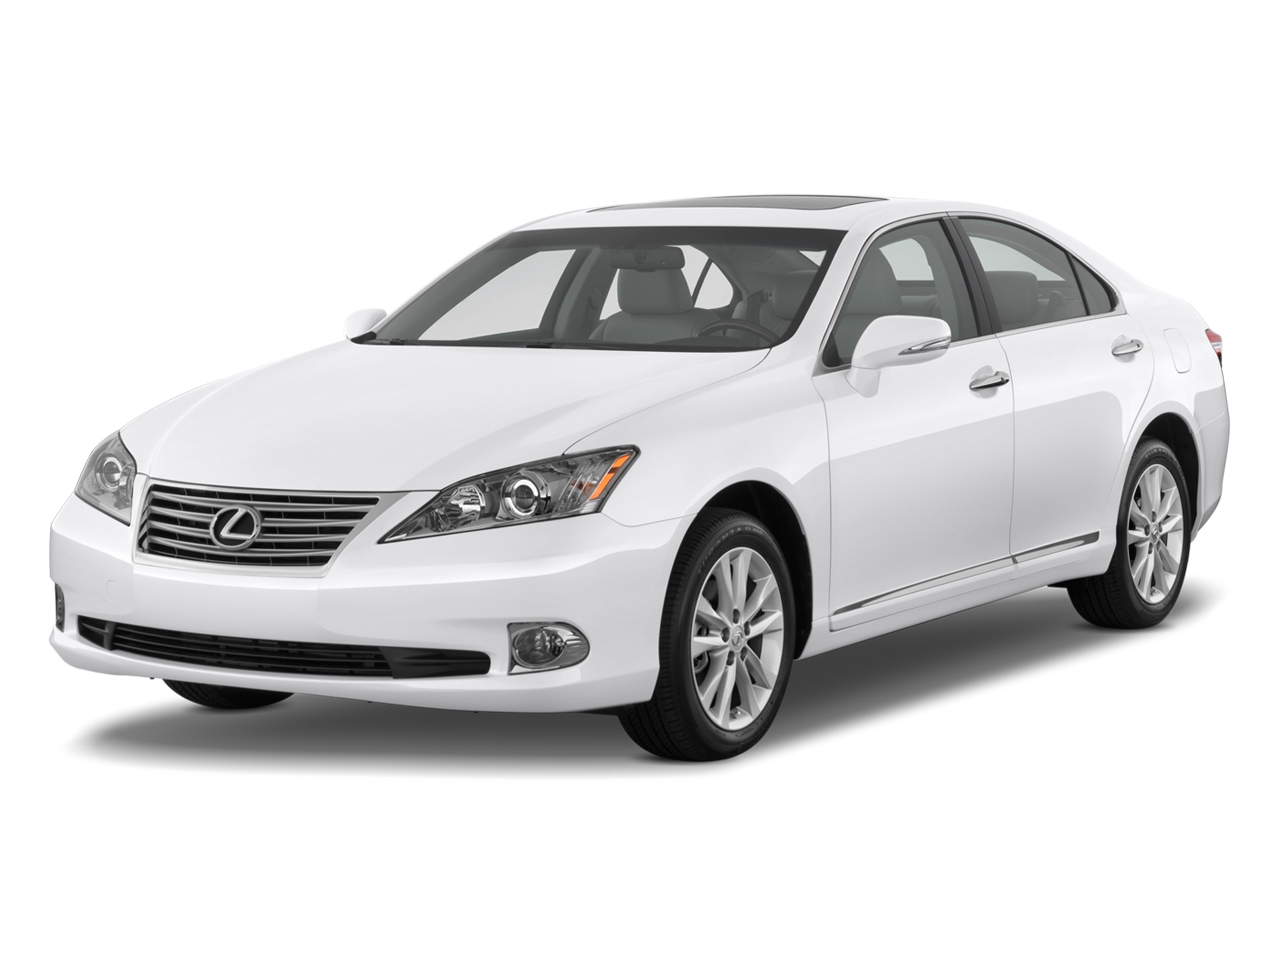 2010 lexus es 350 review ratings specs prices and photos the car connection. Black Bedroom Furniture Sets. Home Design Ideas